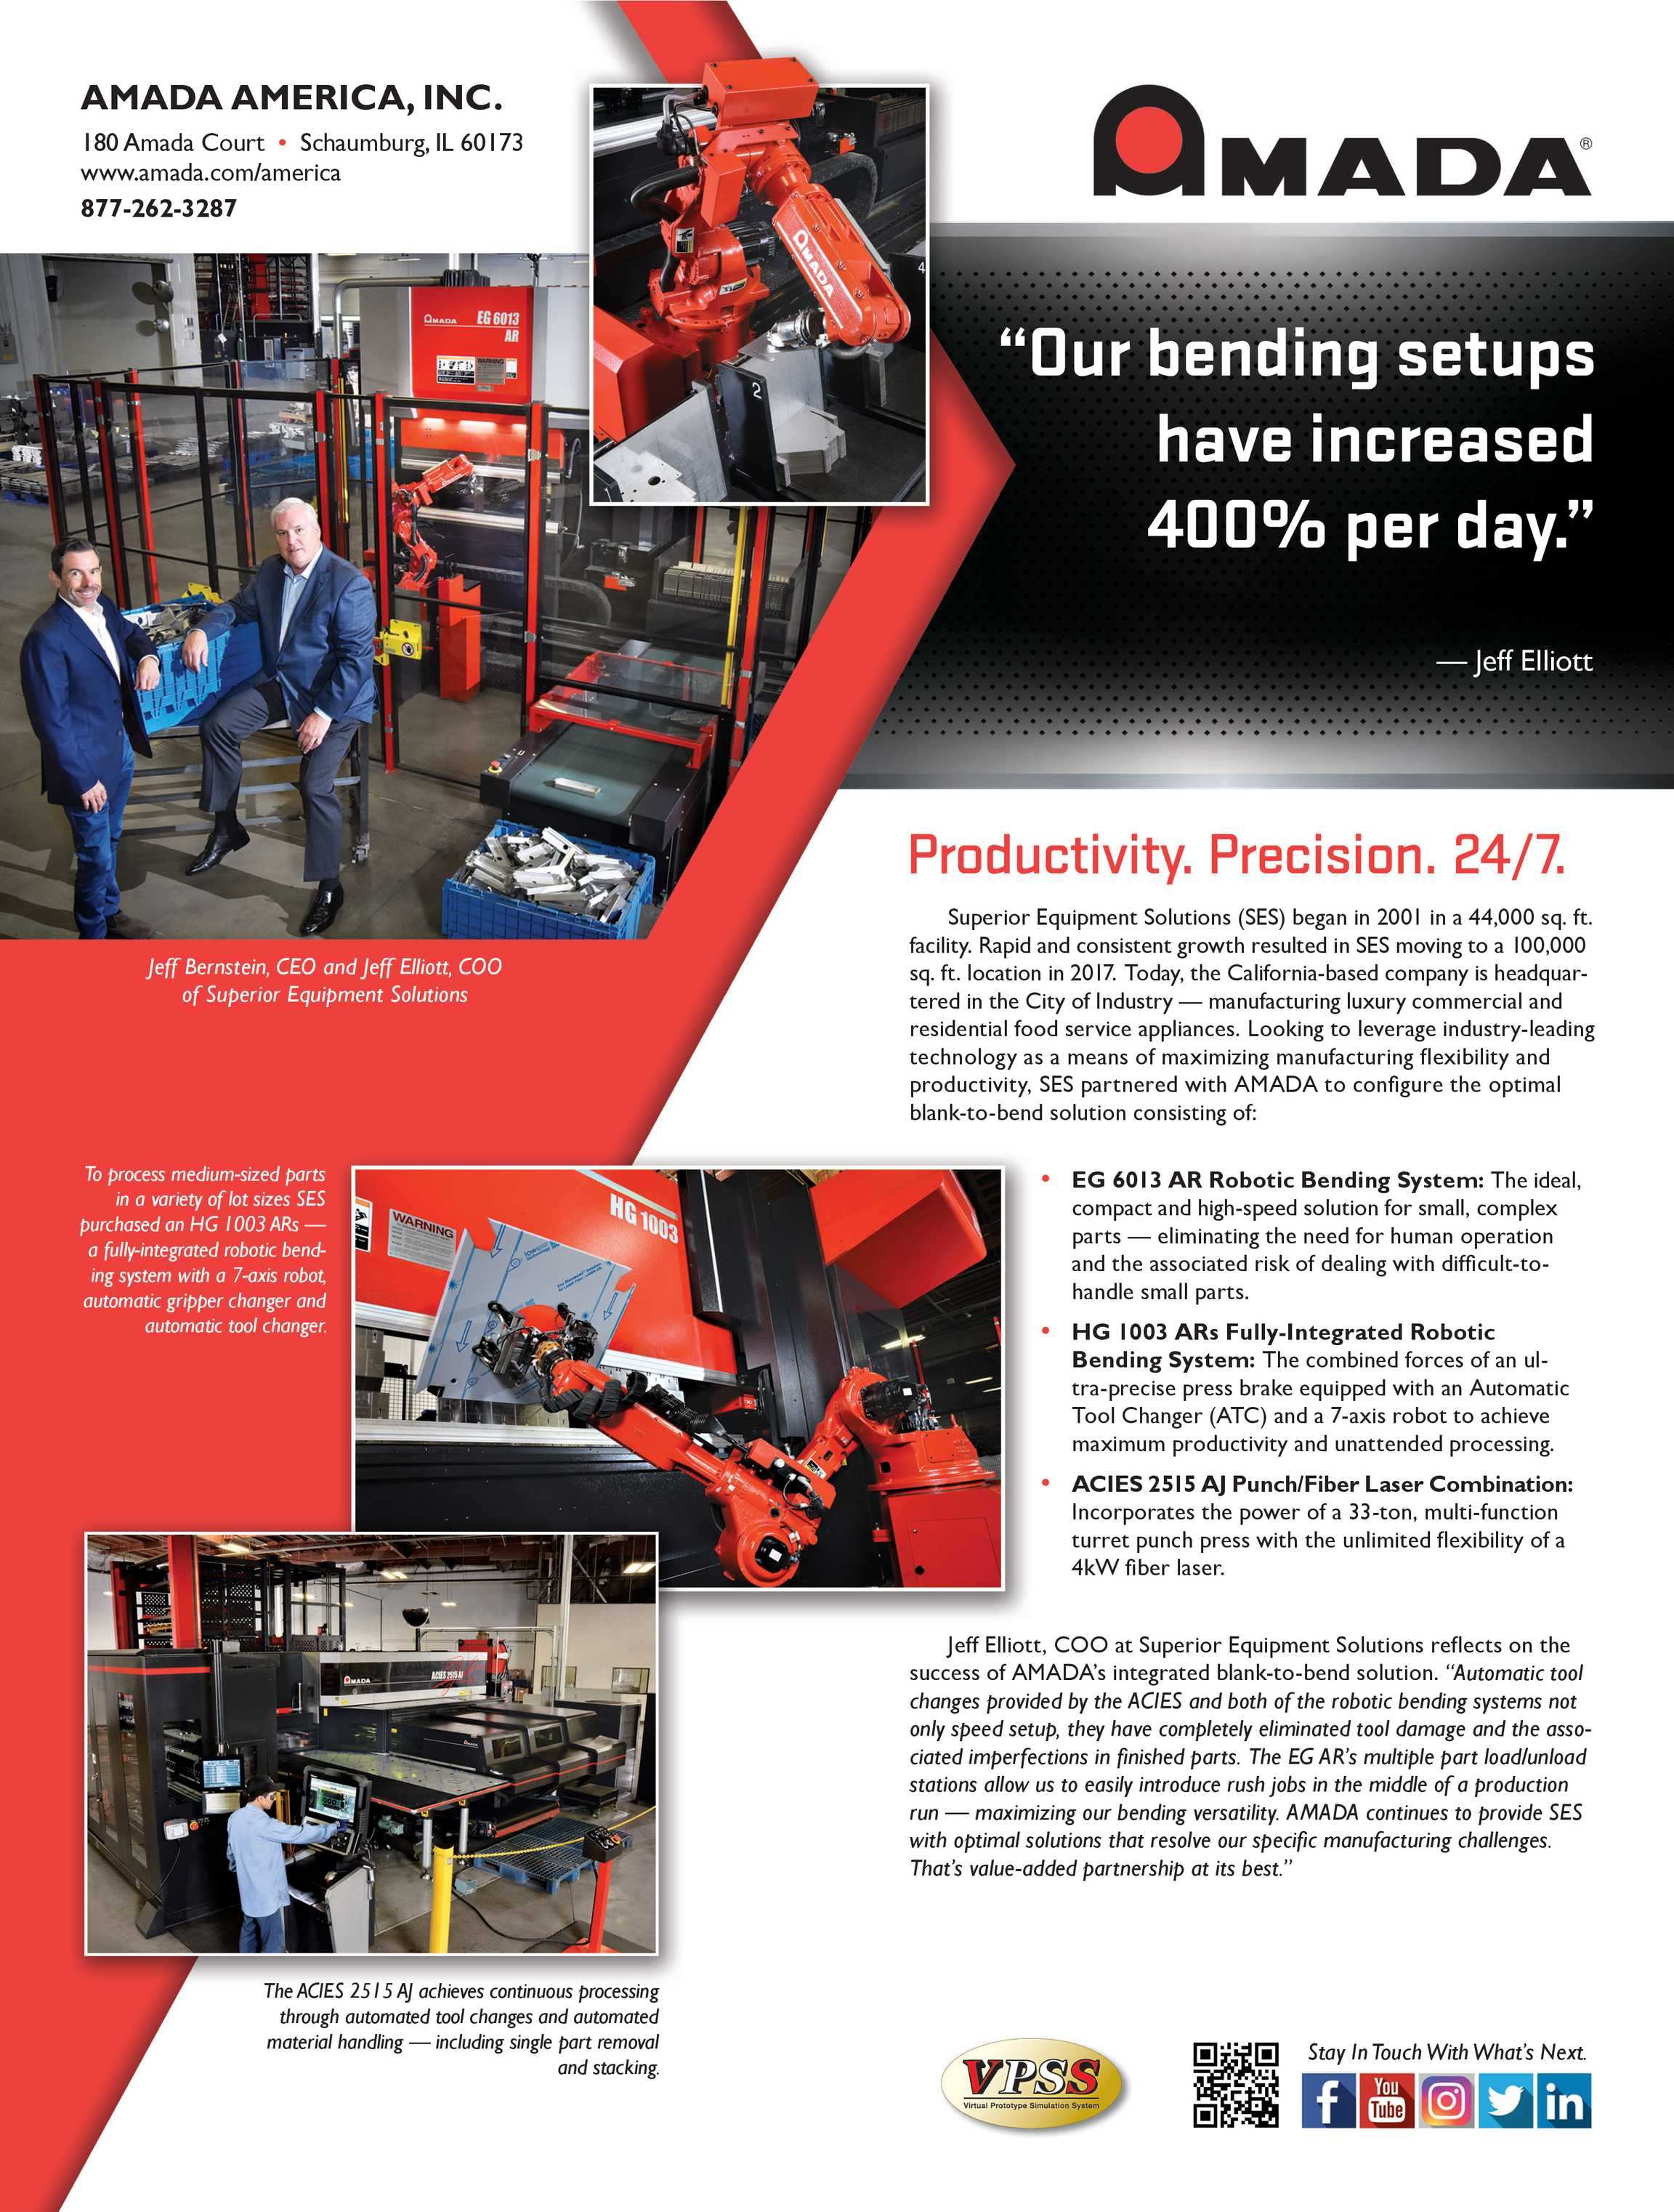 The Fabricator - August 2019 - page 8